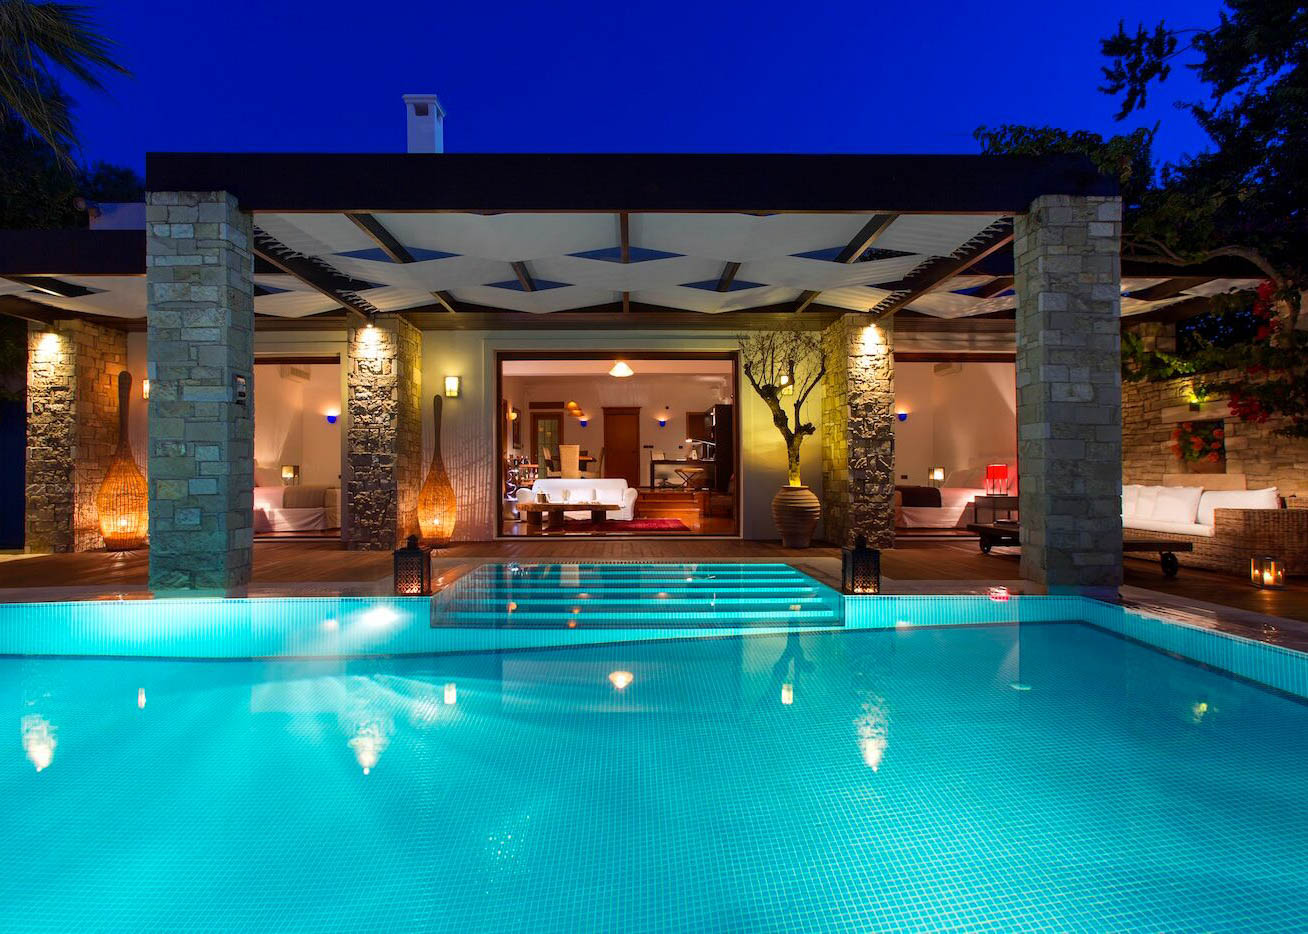 Royal Spa Villa at night